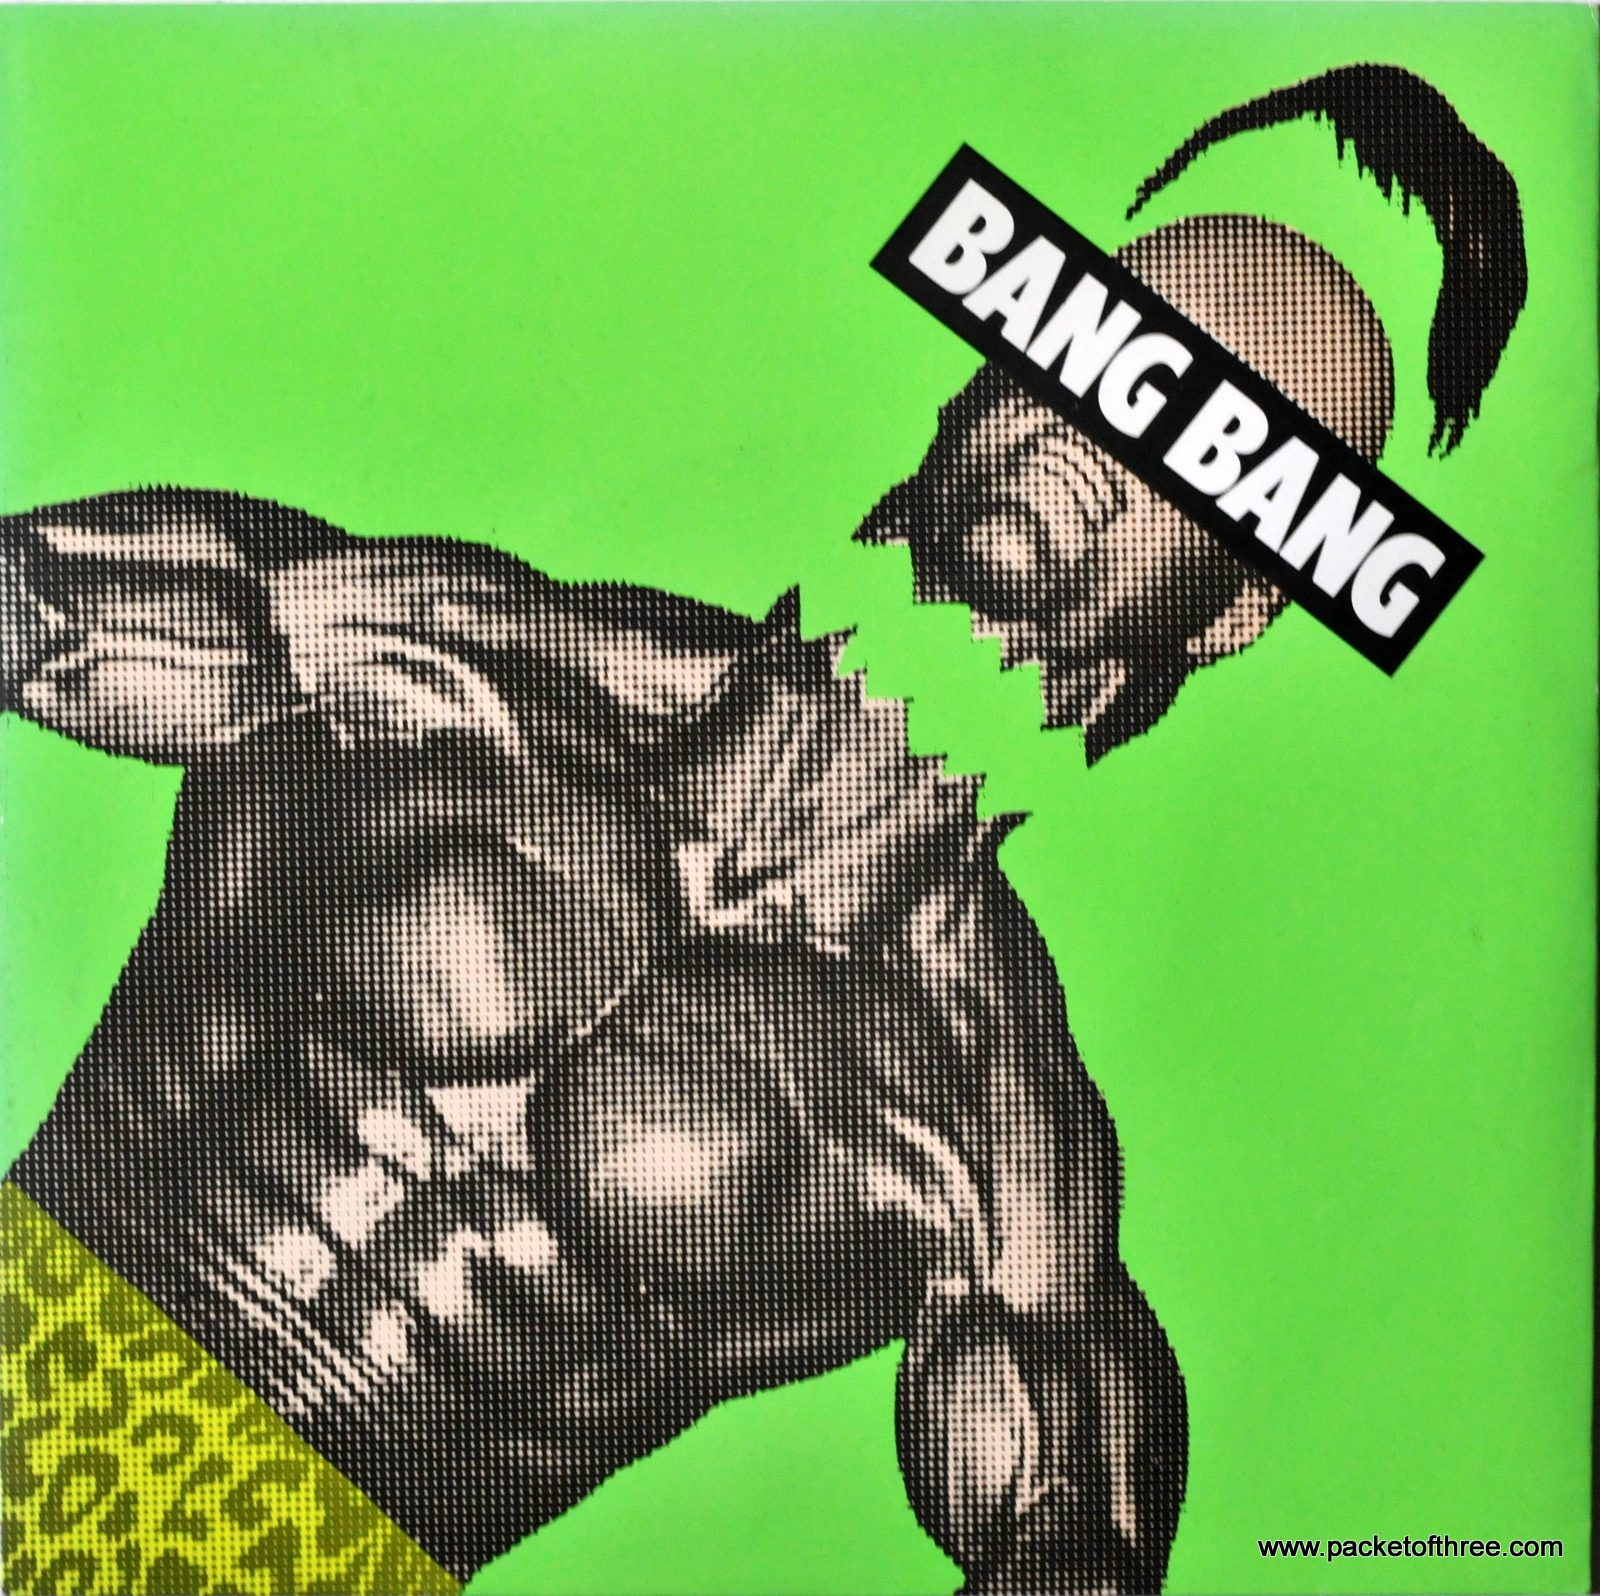 Bang Bang – UK – 7″ – picture sleeve